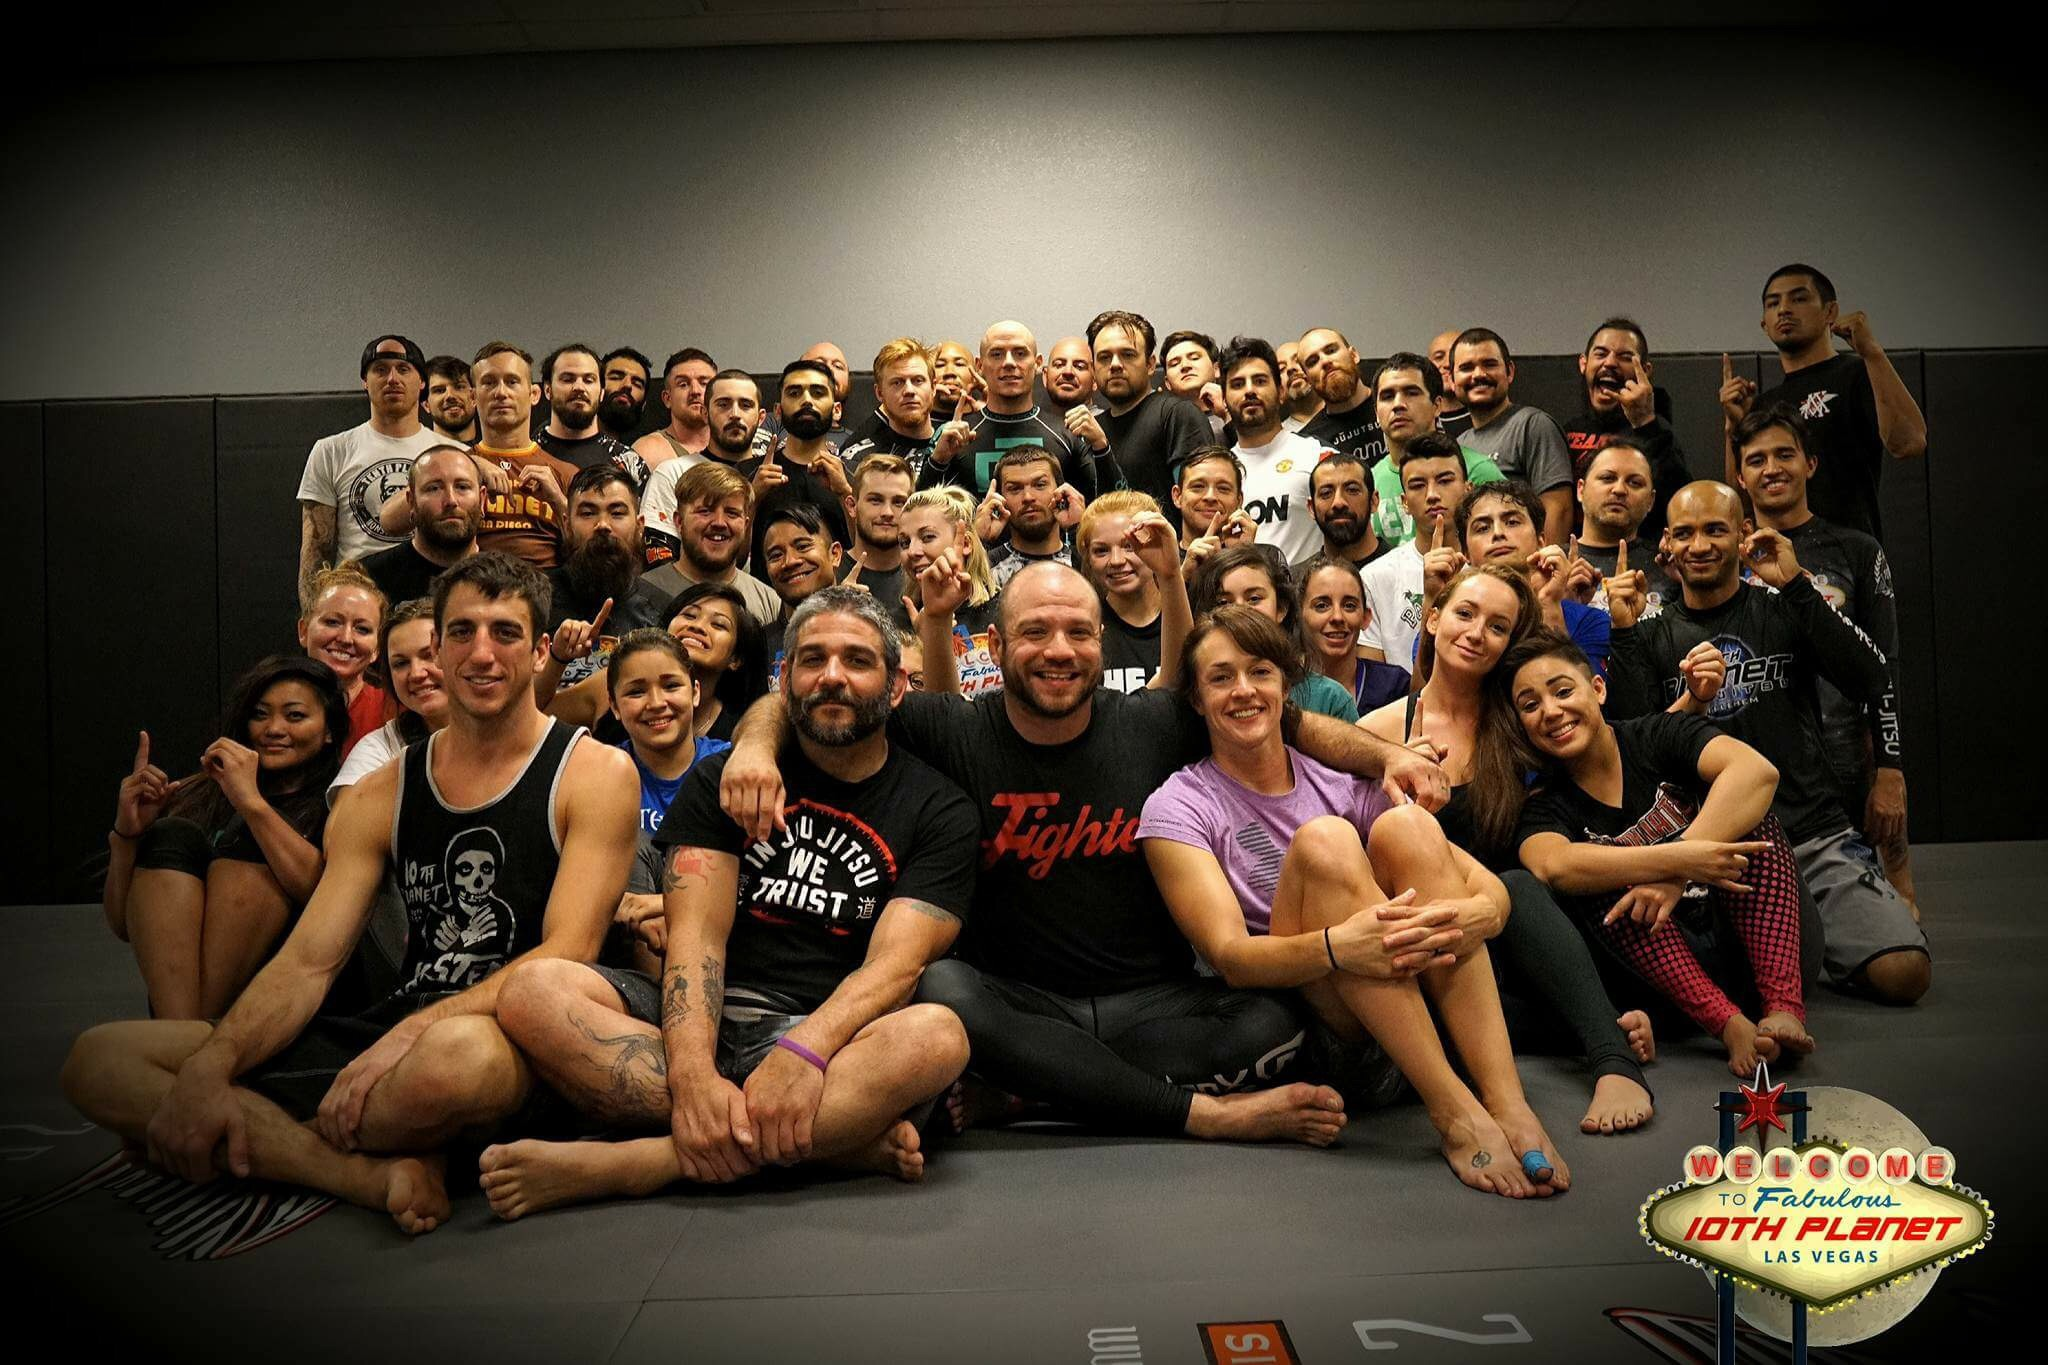 Brandon's seminar at 10th Planet Las Vegas